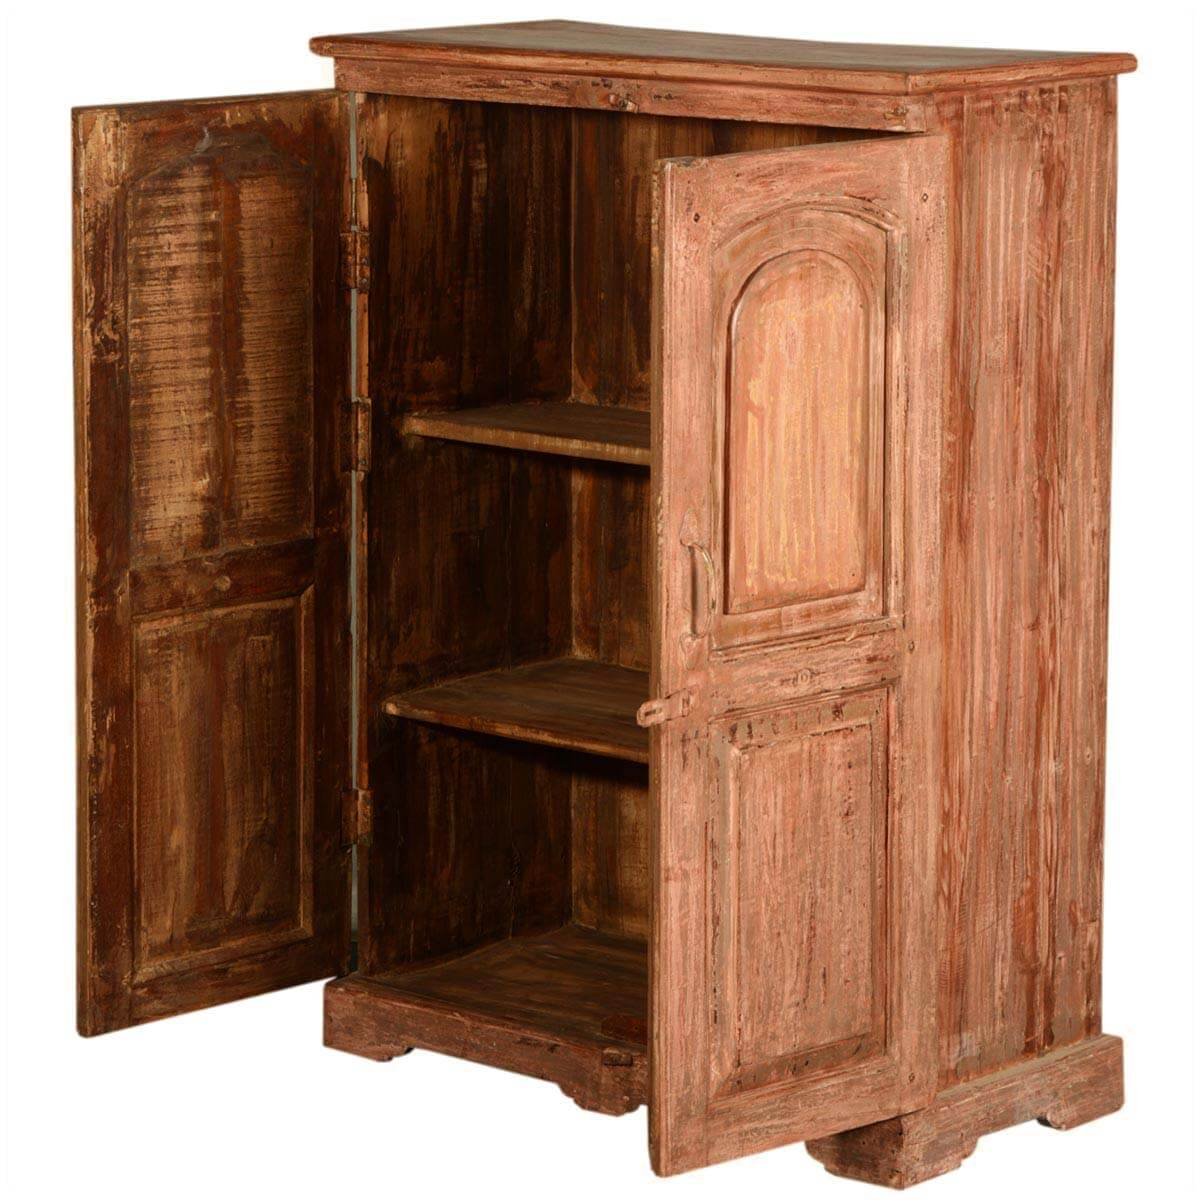 Reclaimed Wood Cabinets ~ New orleans rustic reclaimed wood storage cabinet armoire